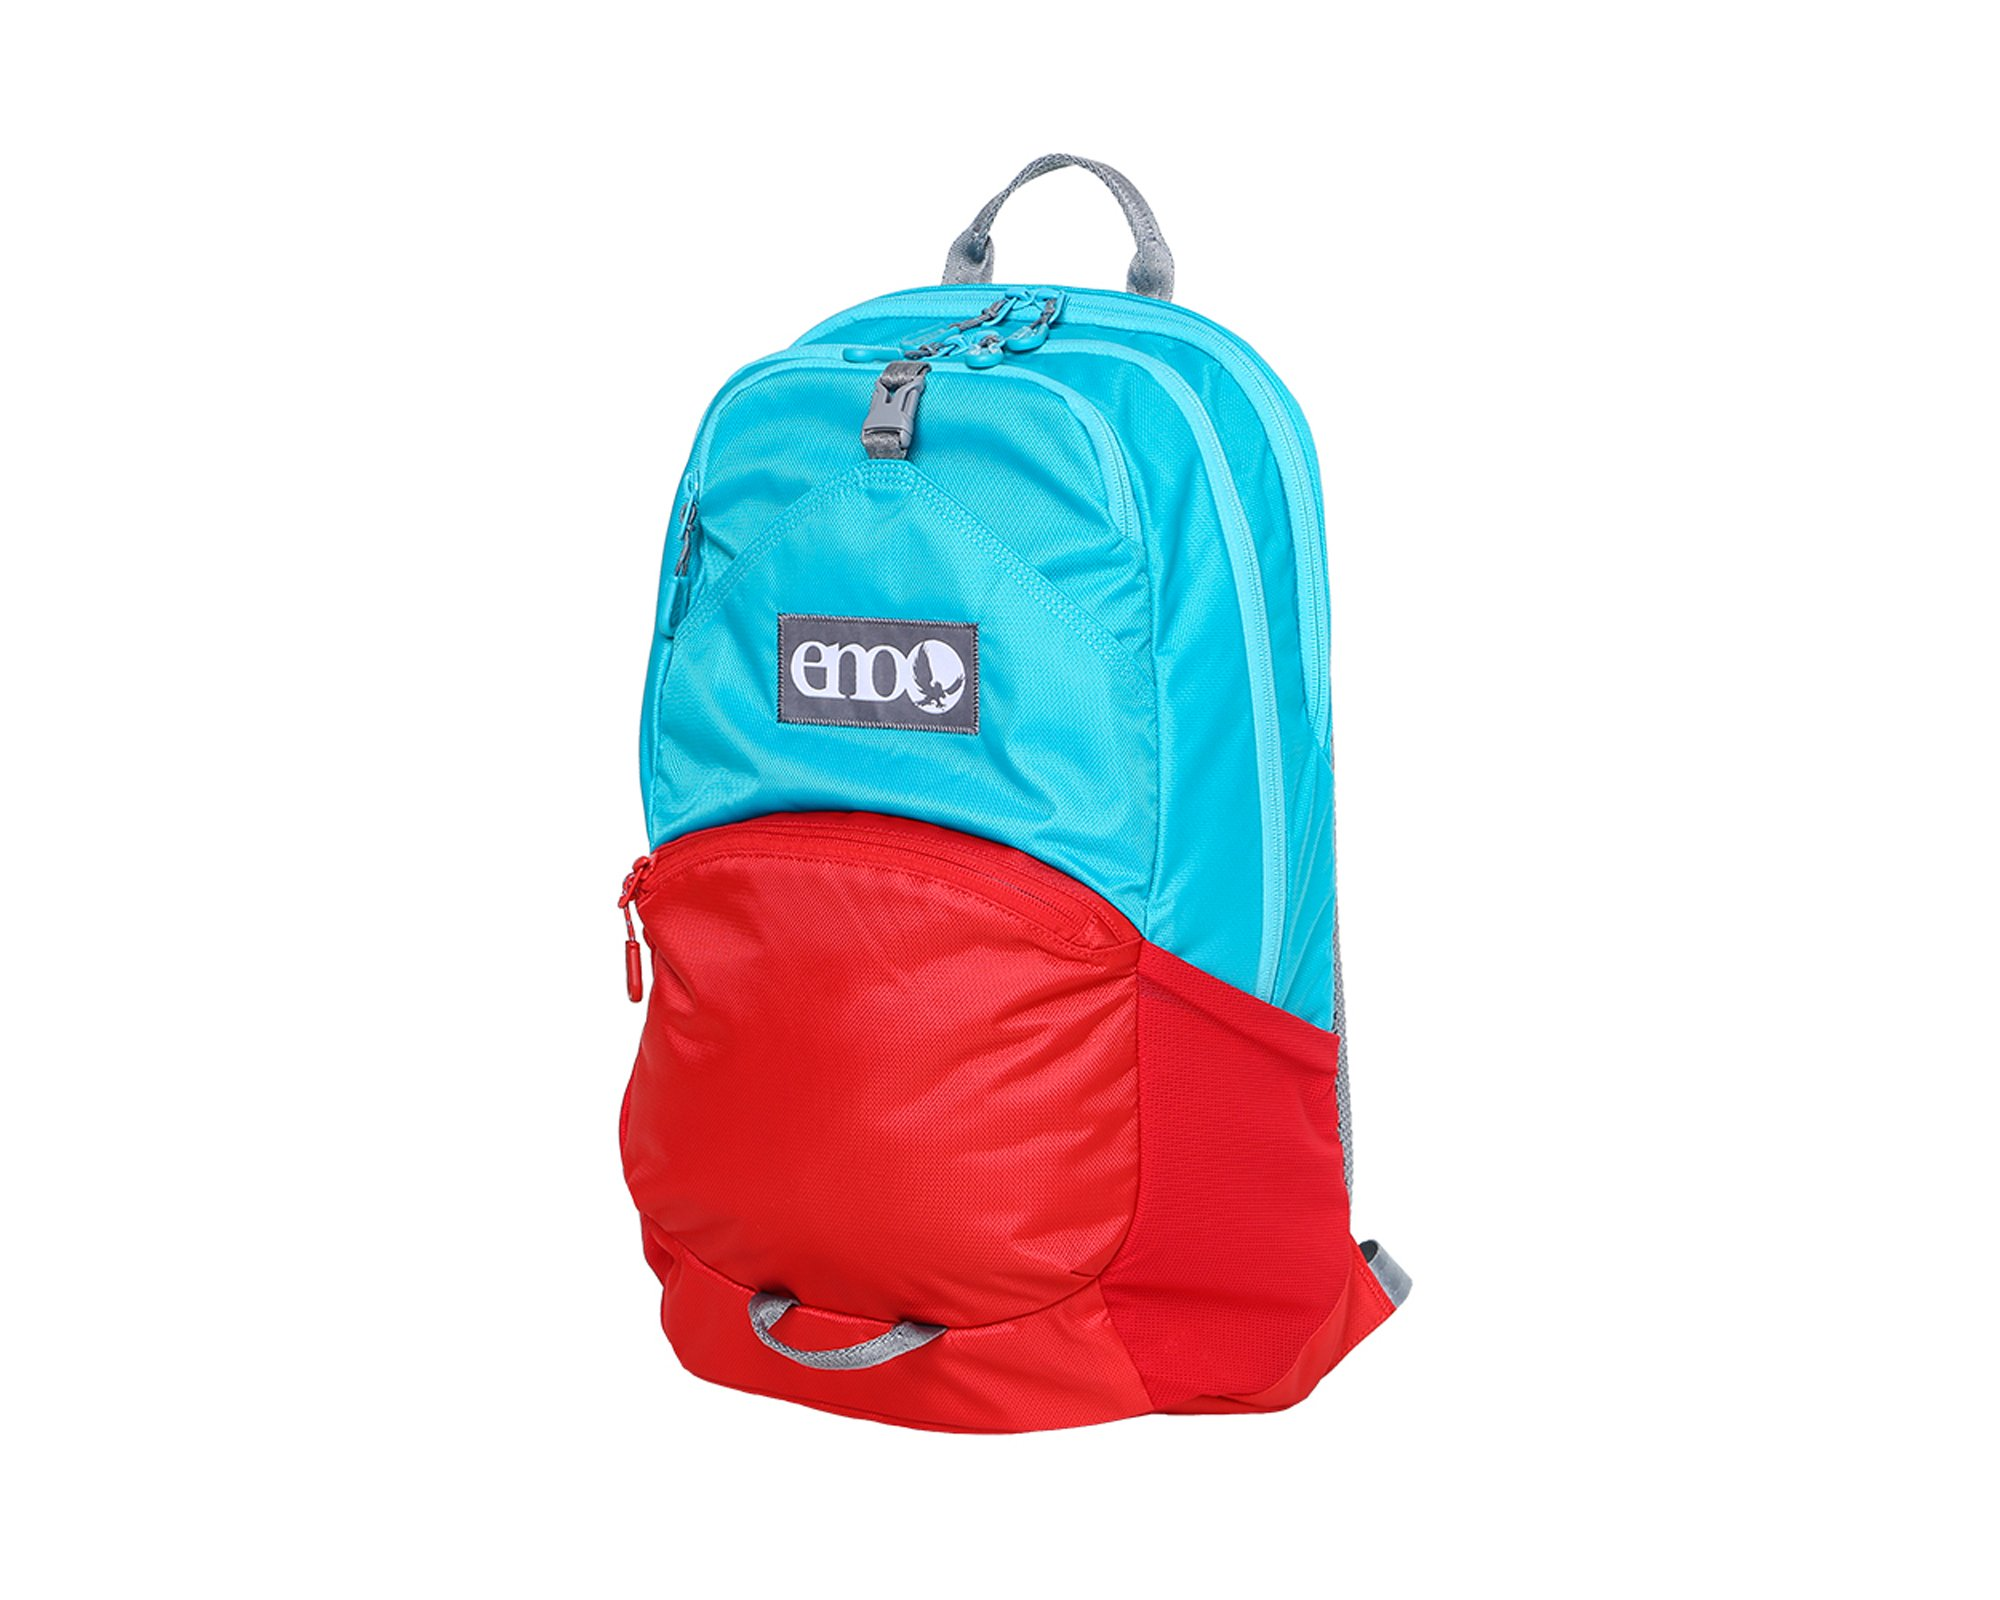 Eagles Nest Outfitters ENO Manchester Backpack, Aqua/Red